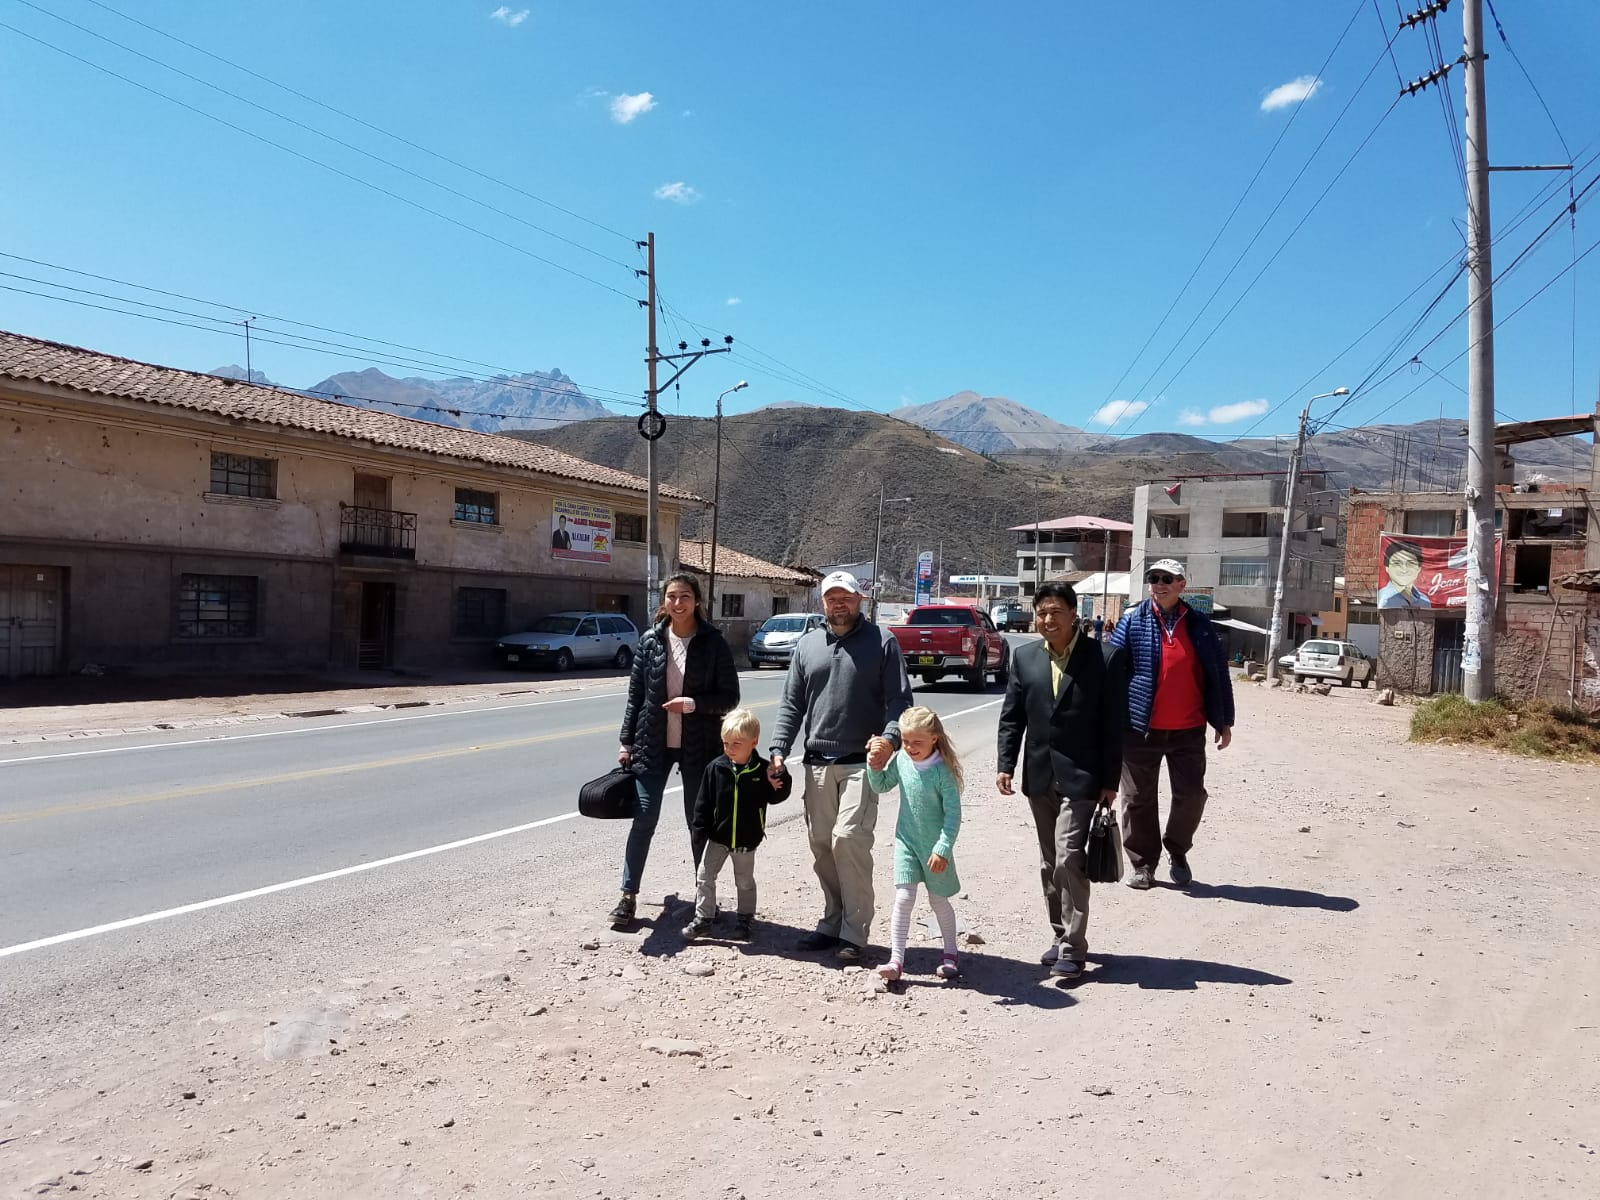 Walking to pastor Celestino's home for lunch after church.